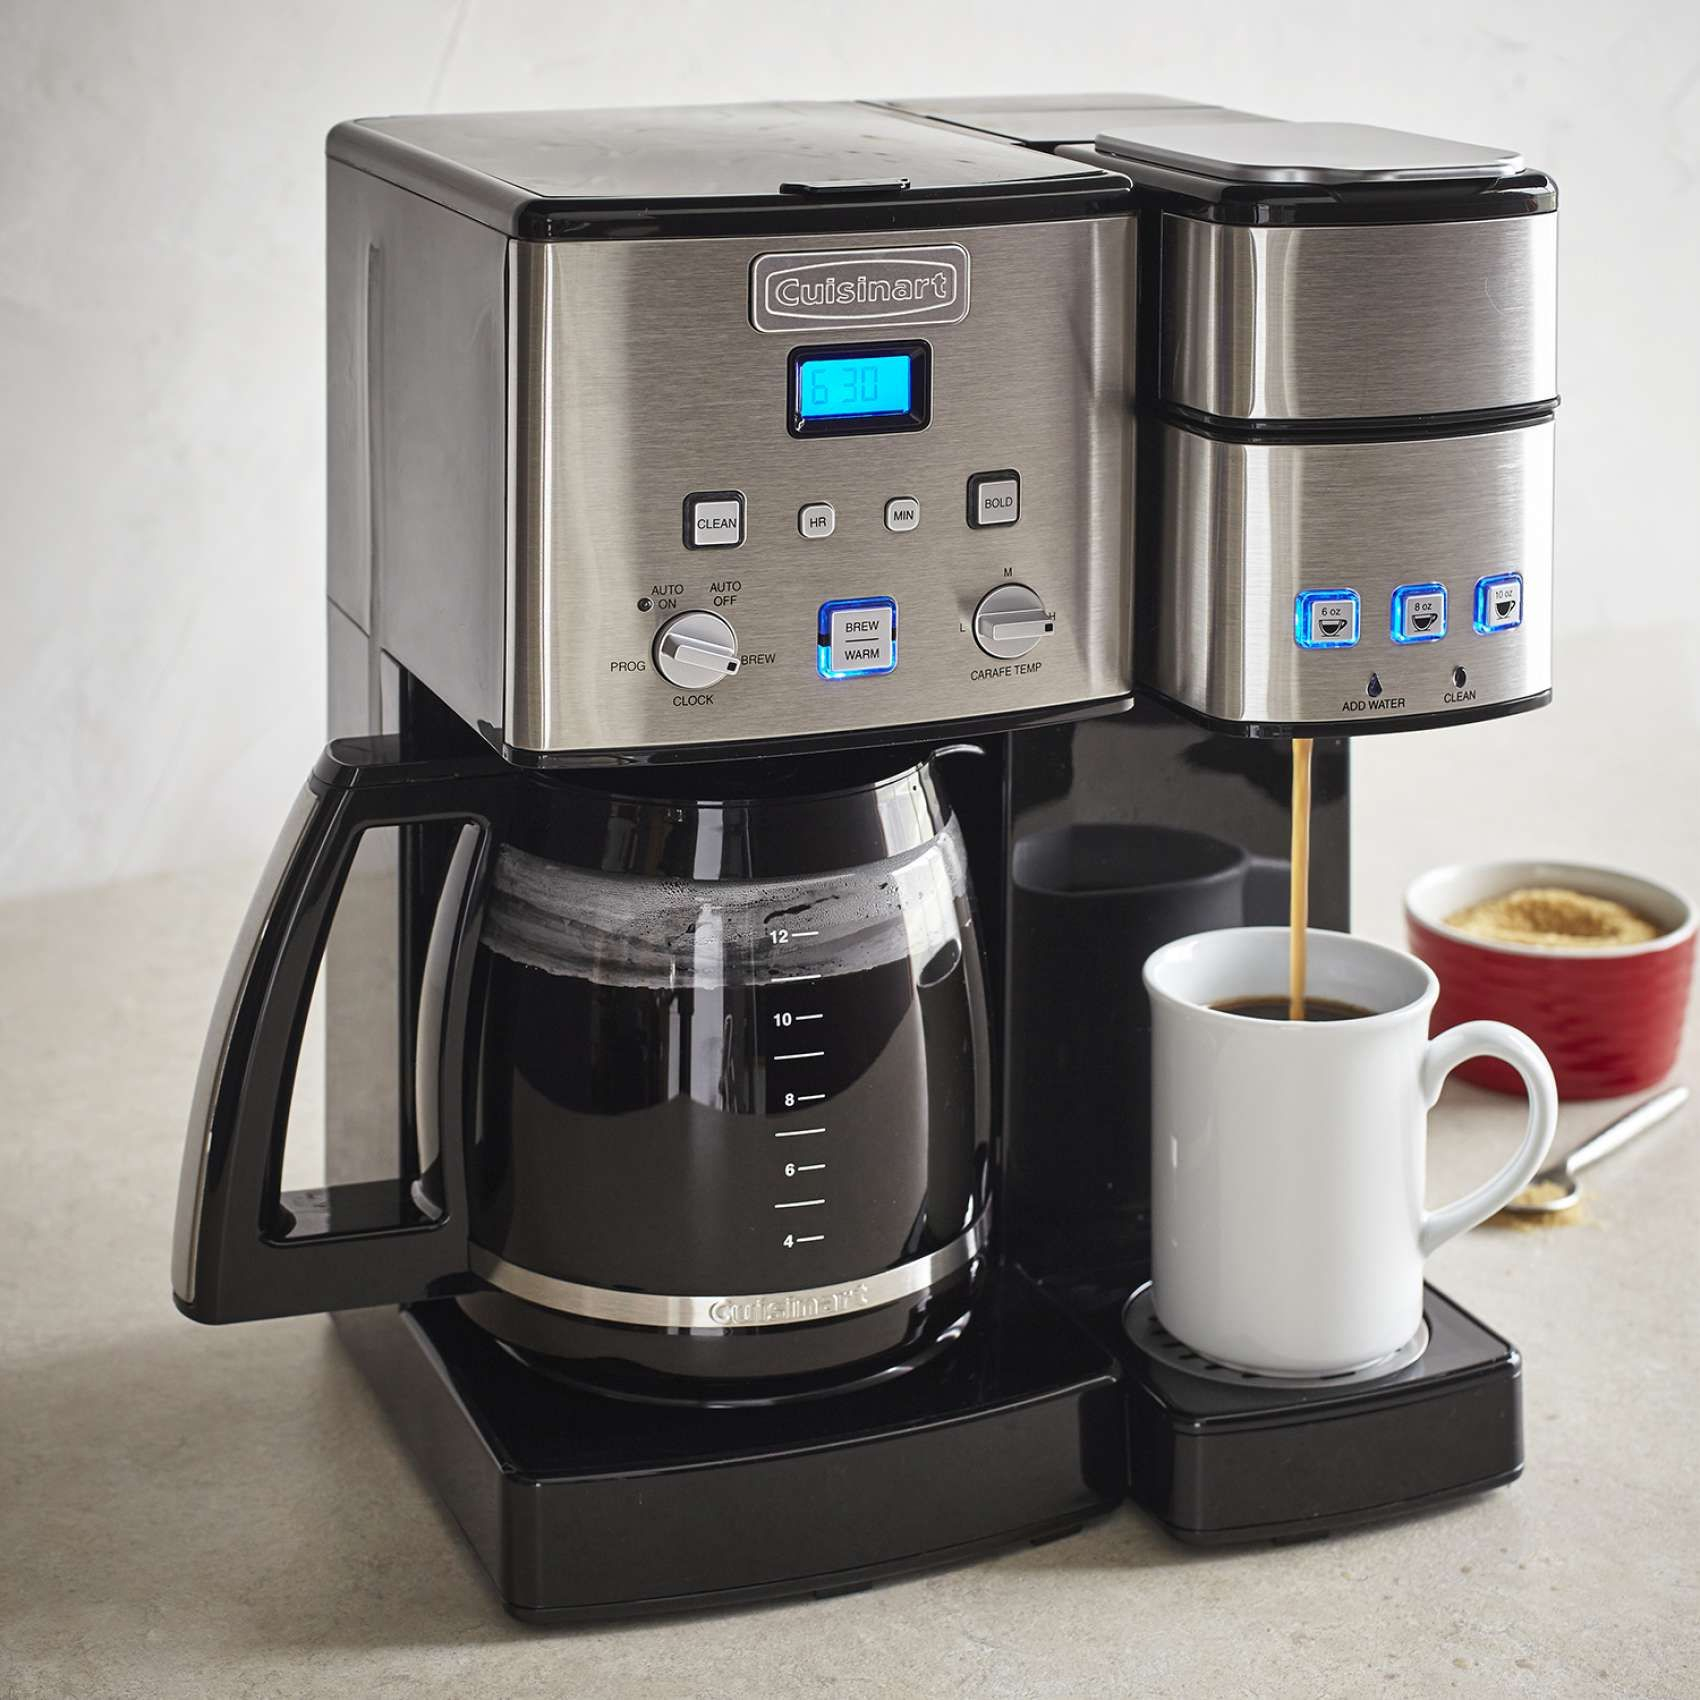 Cuisinart Coffee Center 12 Cup Coffee Maker And Single Serve Brewer Sur La Table Cuisinart Coffee Maker Camping Coffee Maker One Cup Coffee Maker